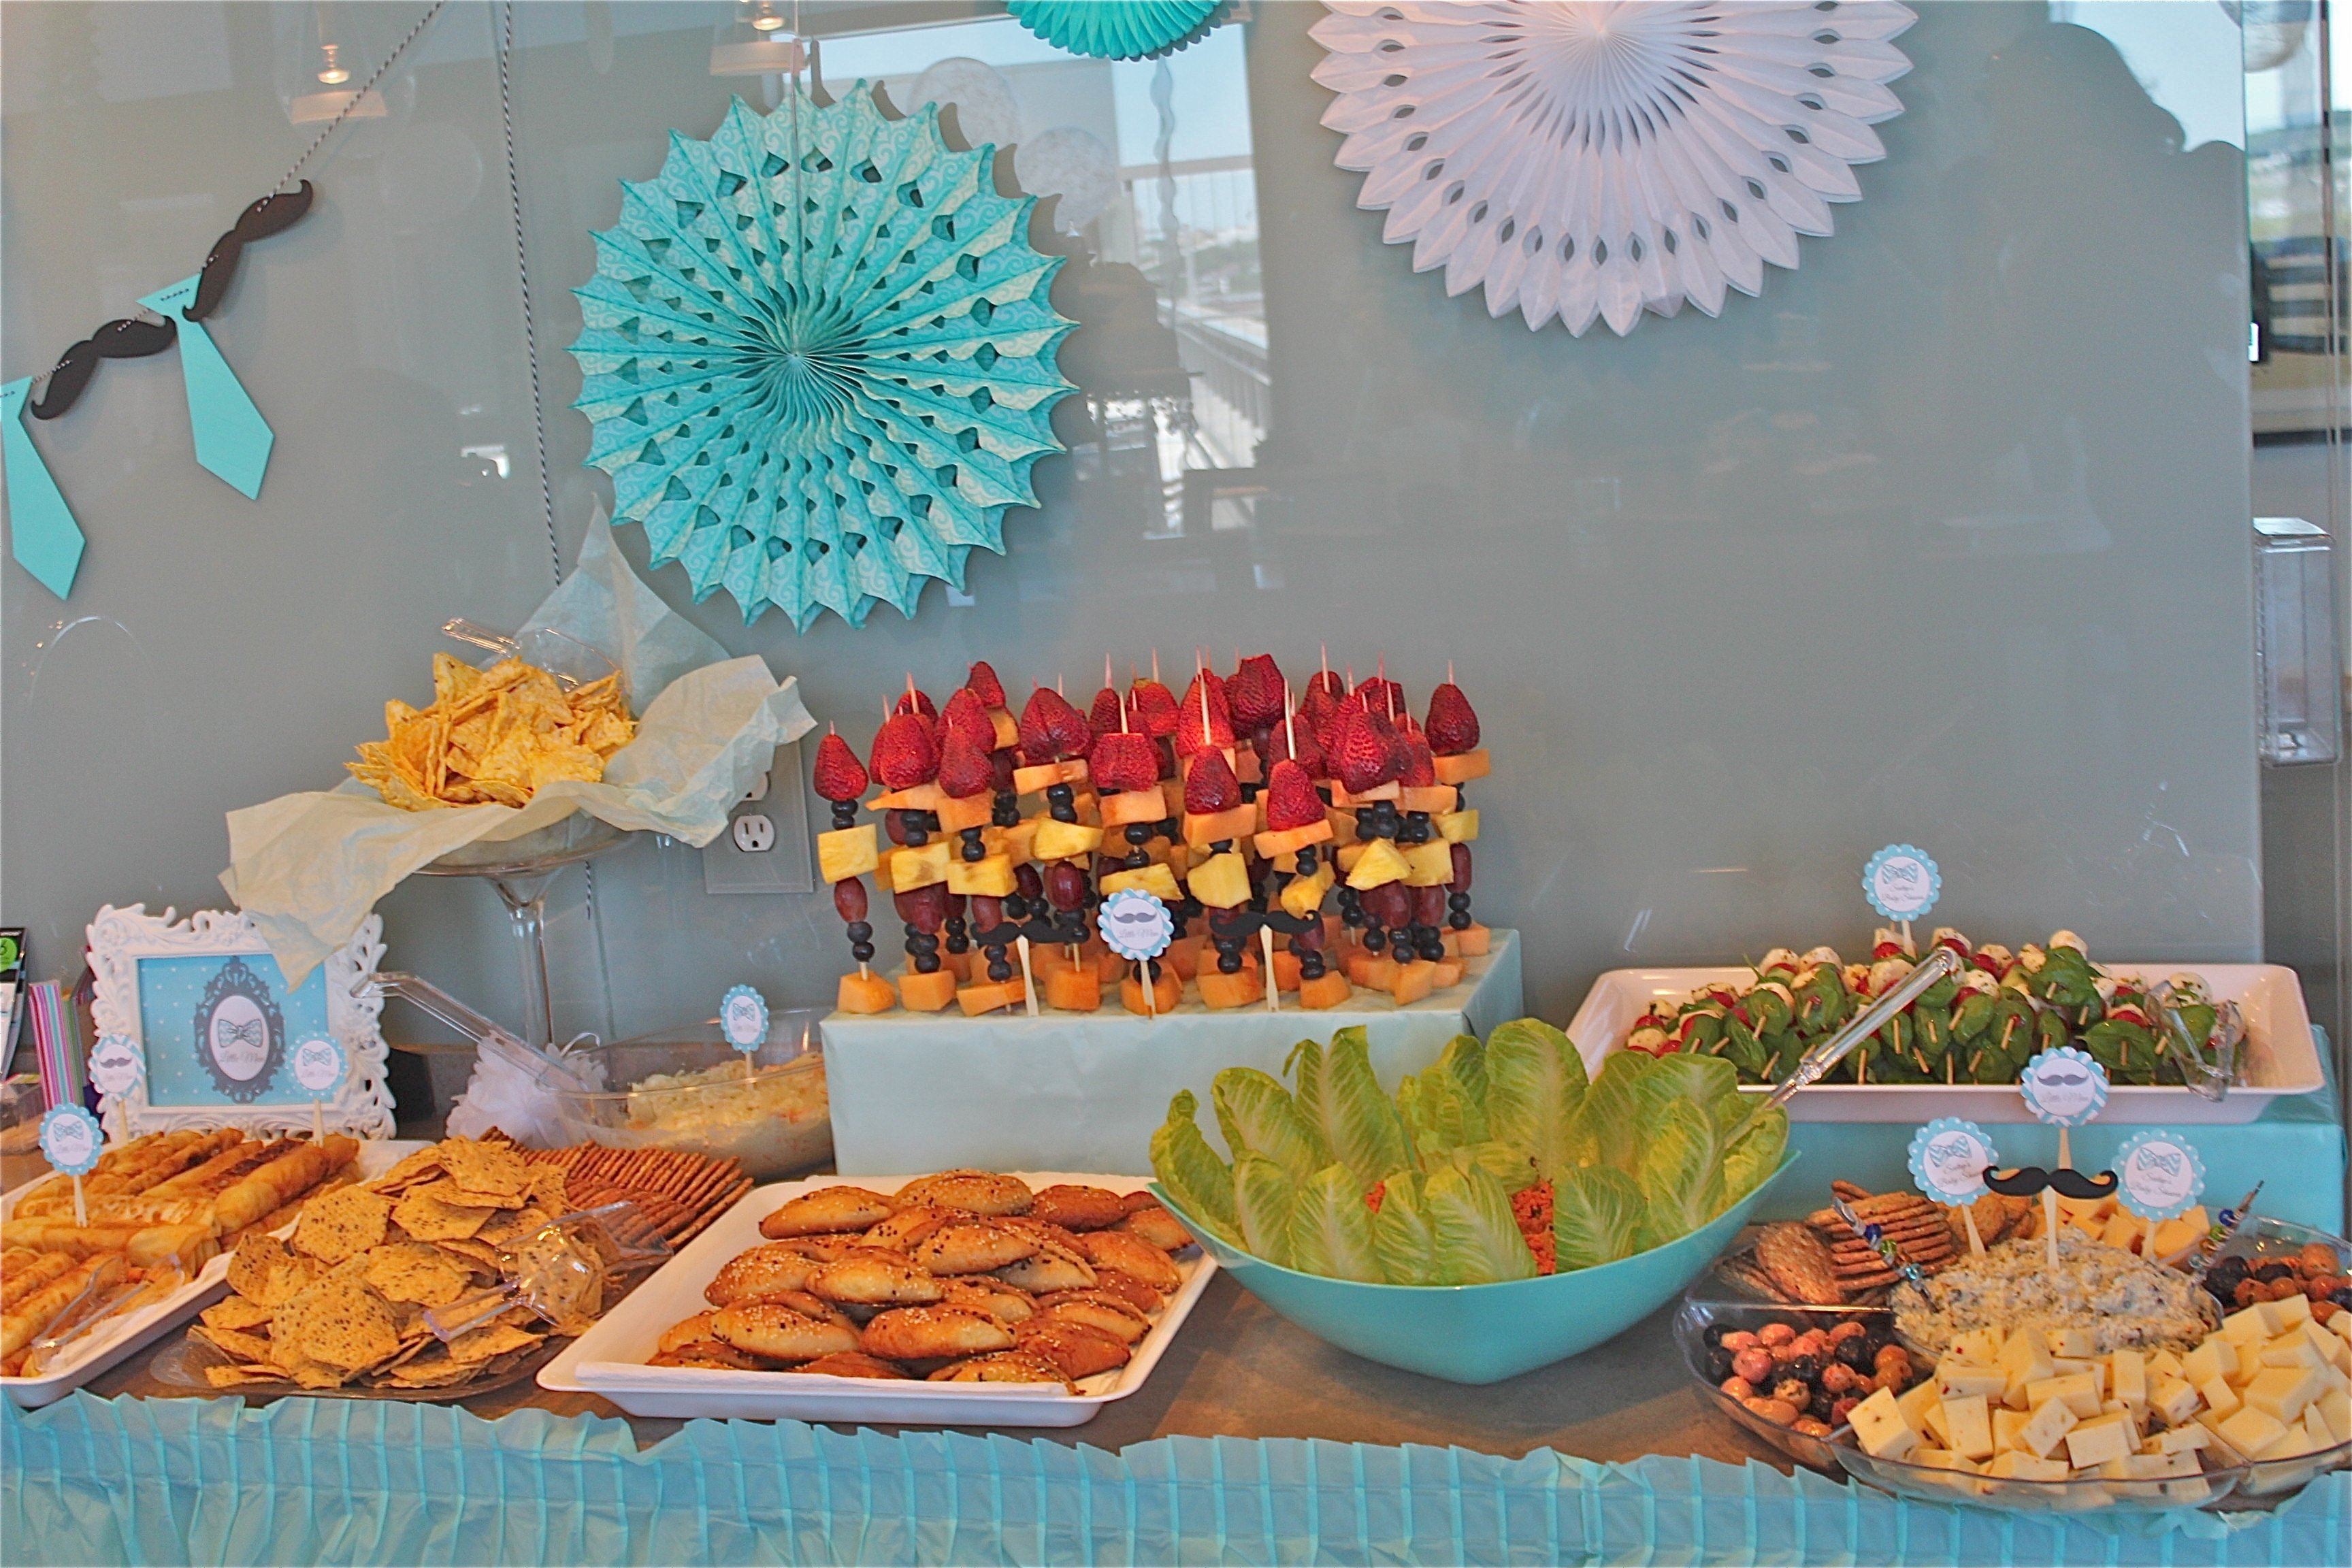 10 Gorgeous Baby Shower Food And Drink Ideas baby showereas food for boy finger cheap pinterest magnificent 2021